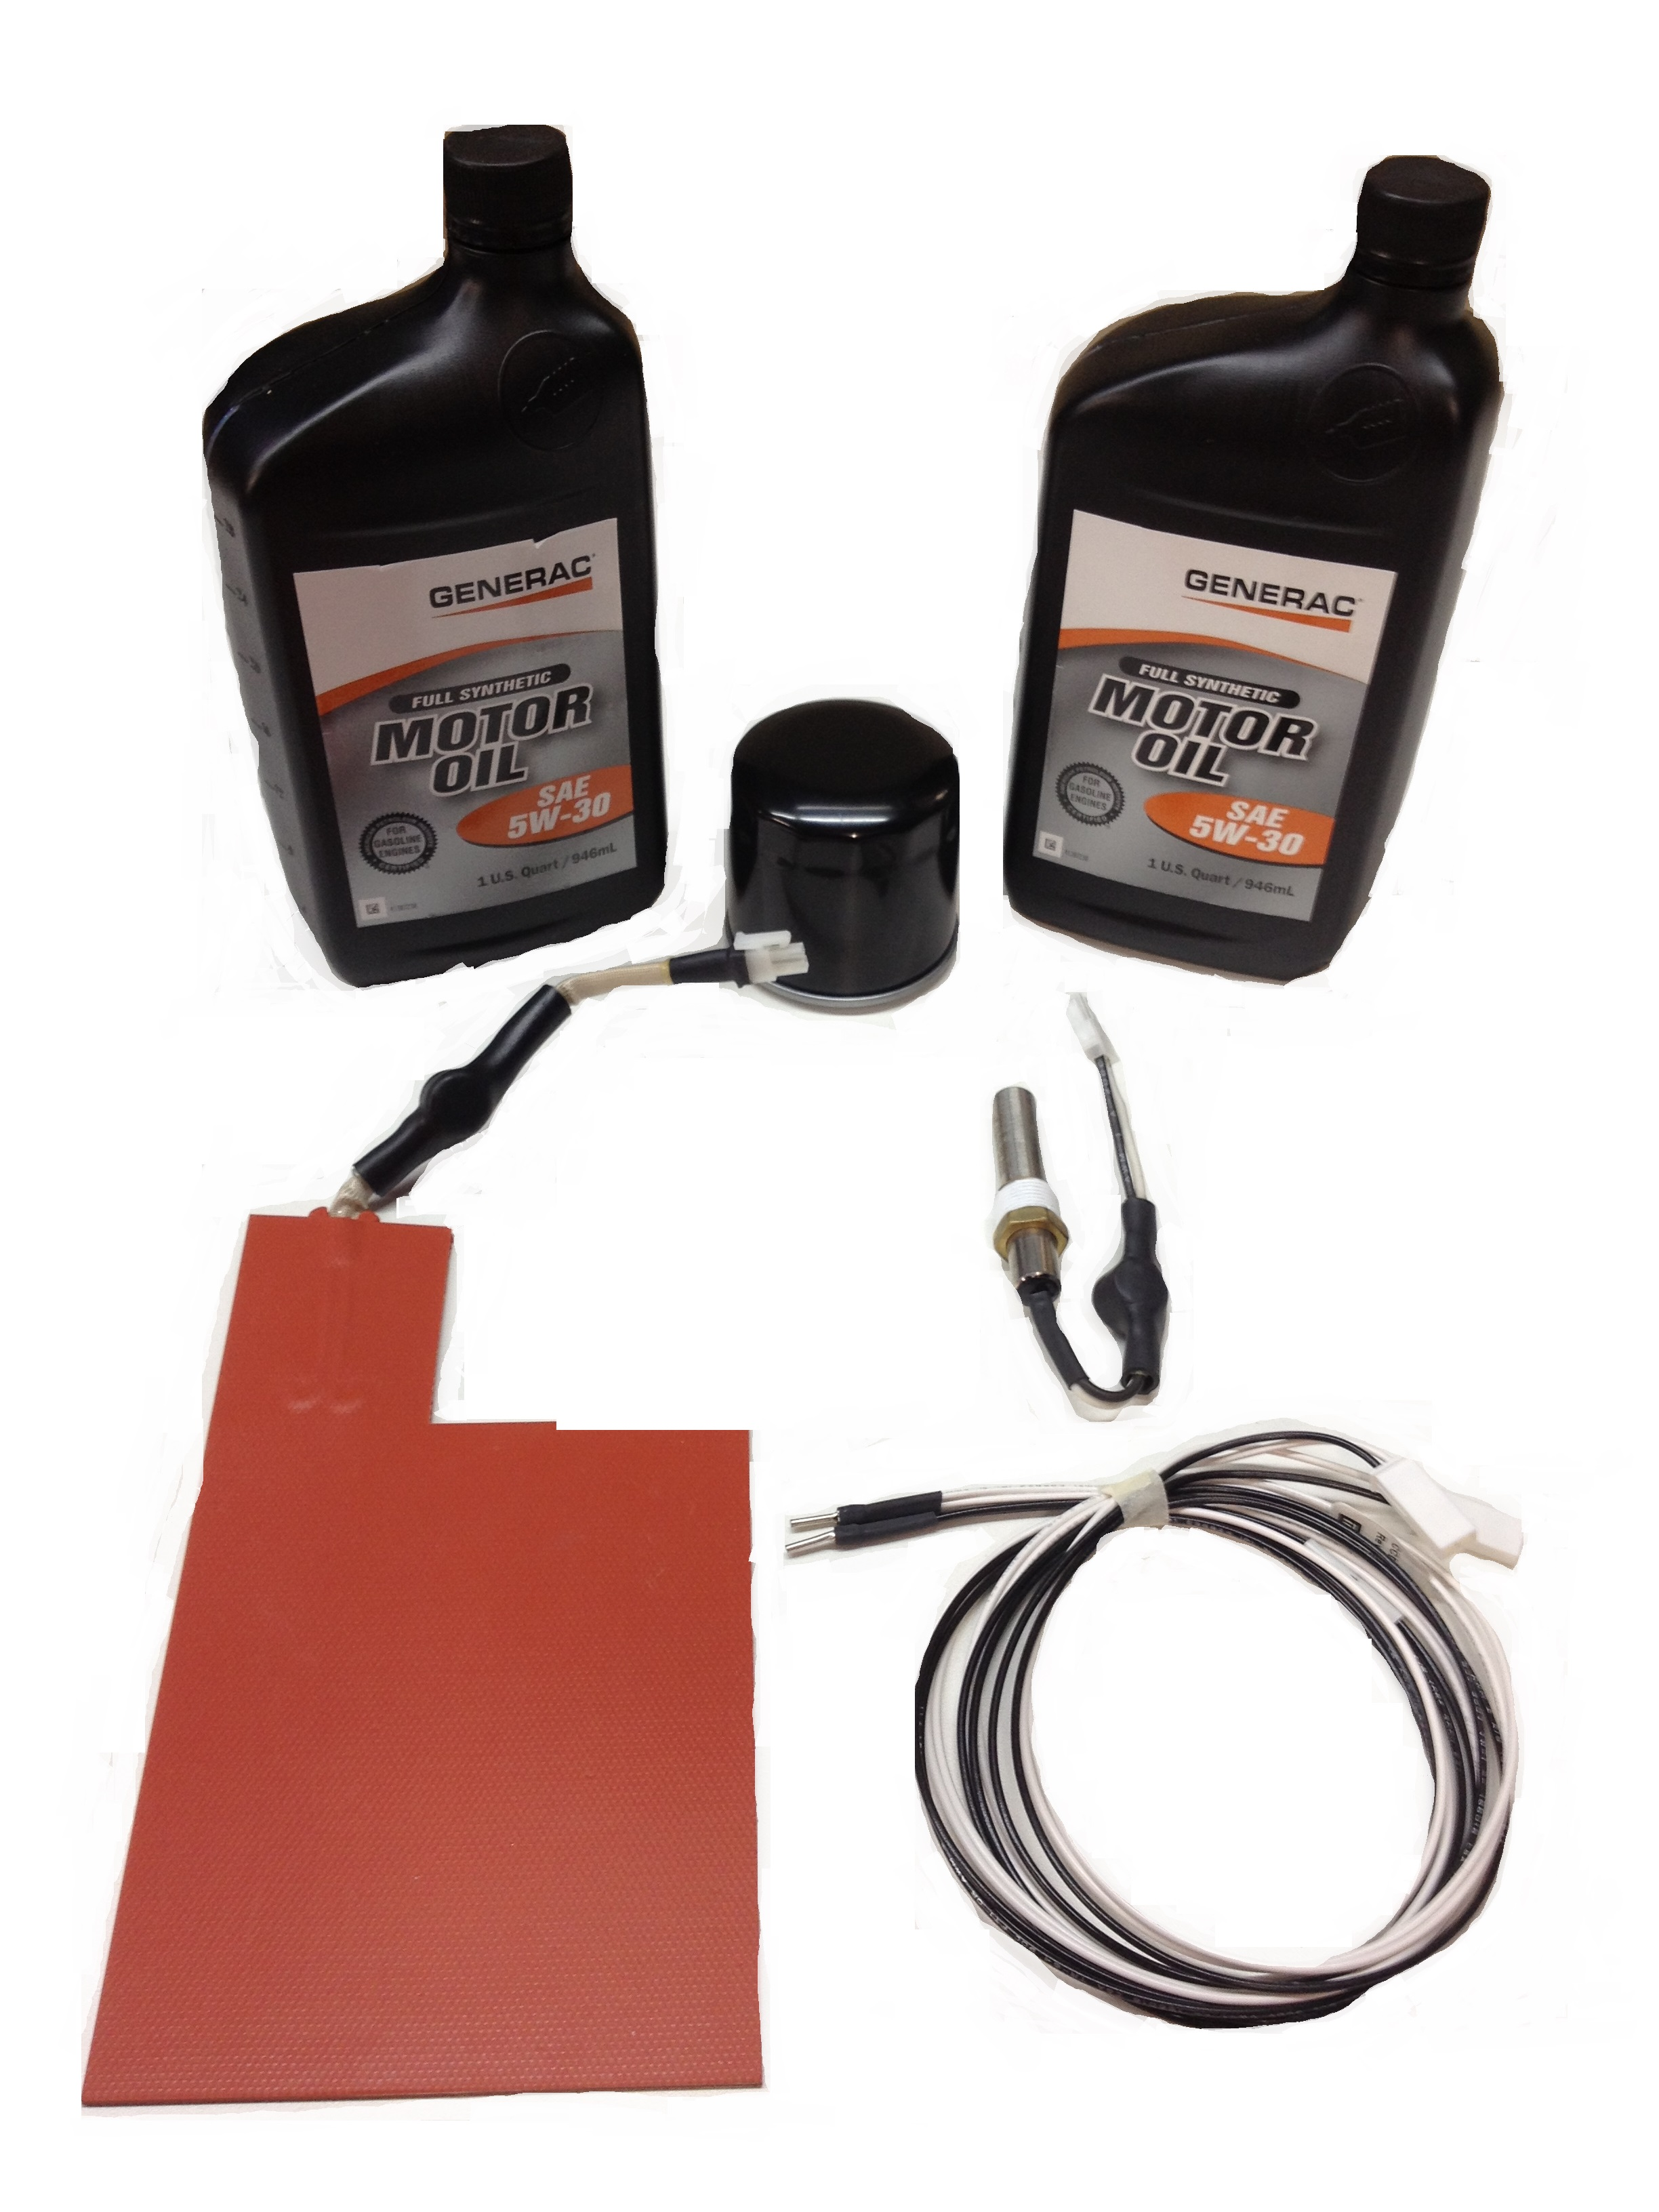 Generac corepower cold weather kit w 2 qt 39 s of synthetic for What motor oil is best for cold weather